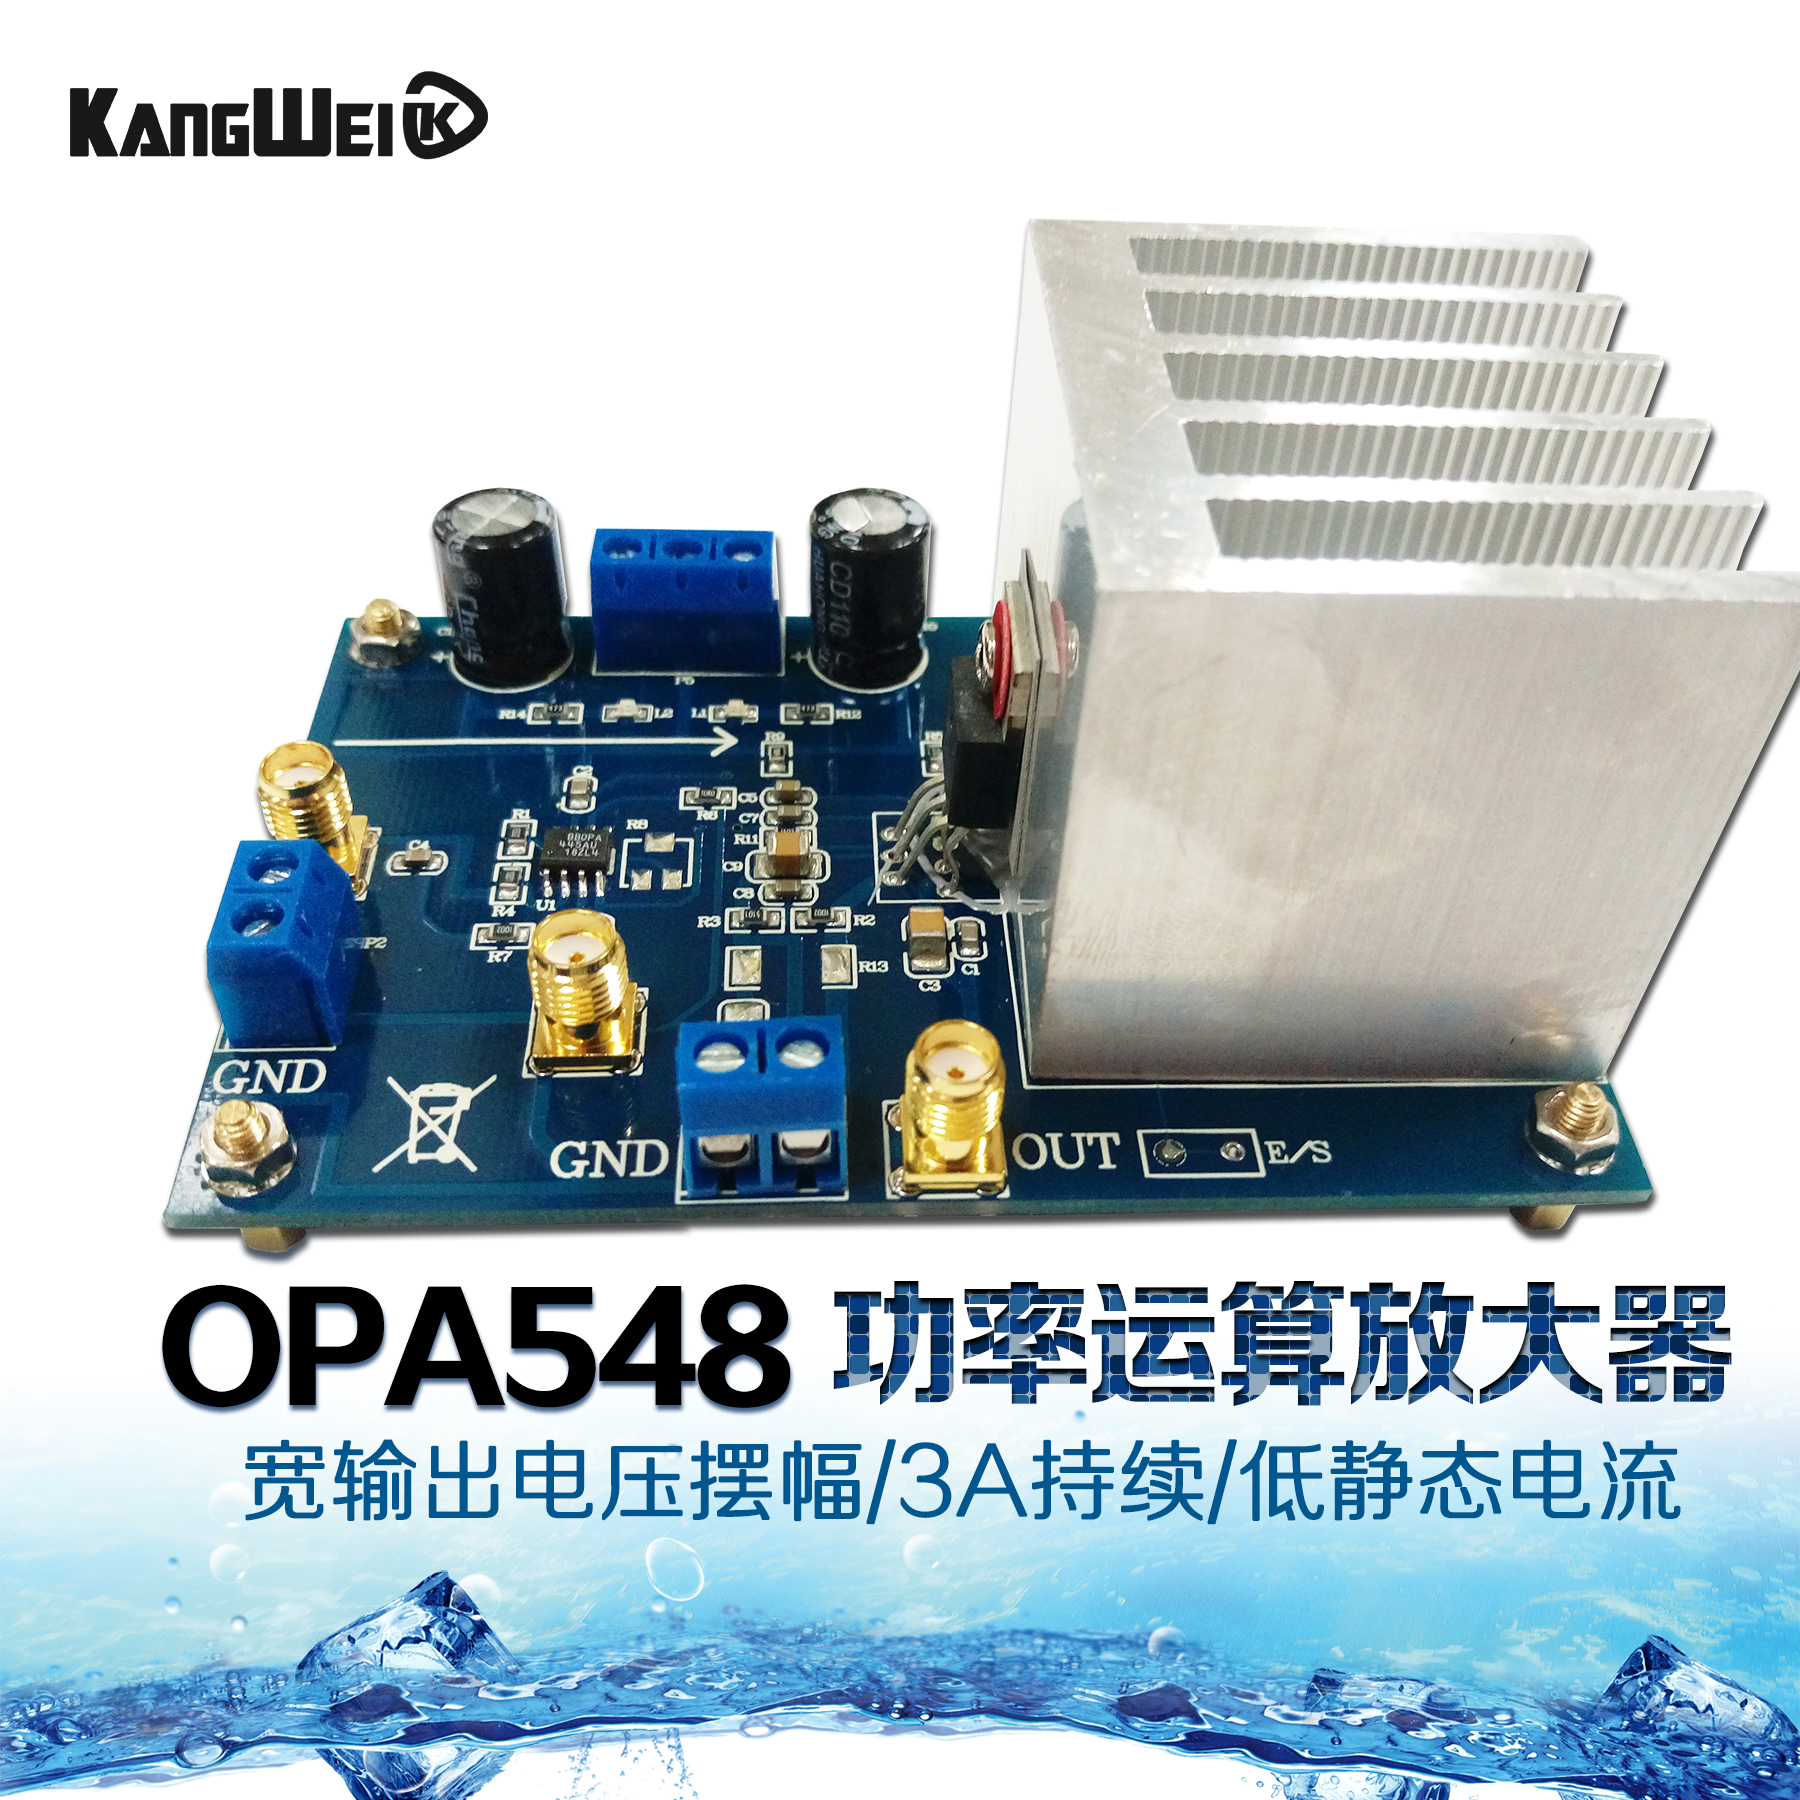 OPA548 Power Operational Amplifier Current Amplifier 3A Continuous Current Wide Output Voltage SwingOPA548 Power Operational Amplifier Current Amplifier 3A Continuous Current Wide Output Voltage Swing